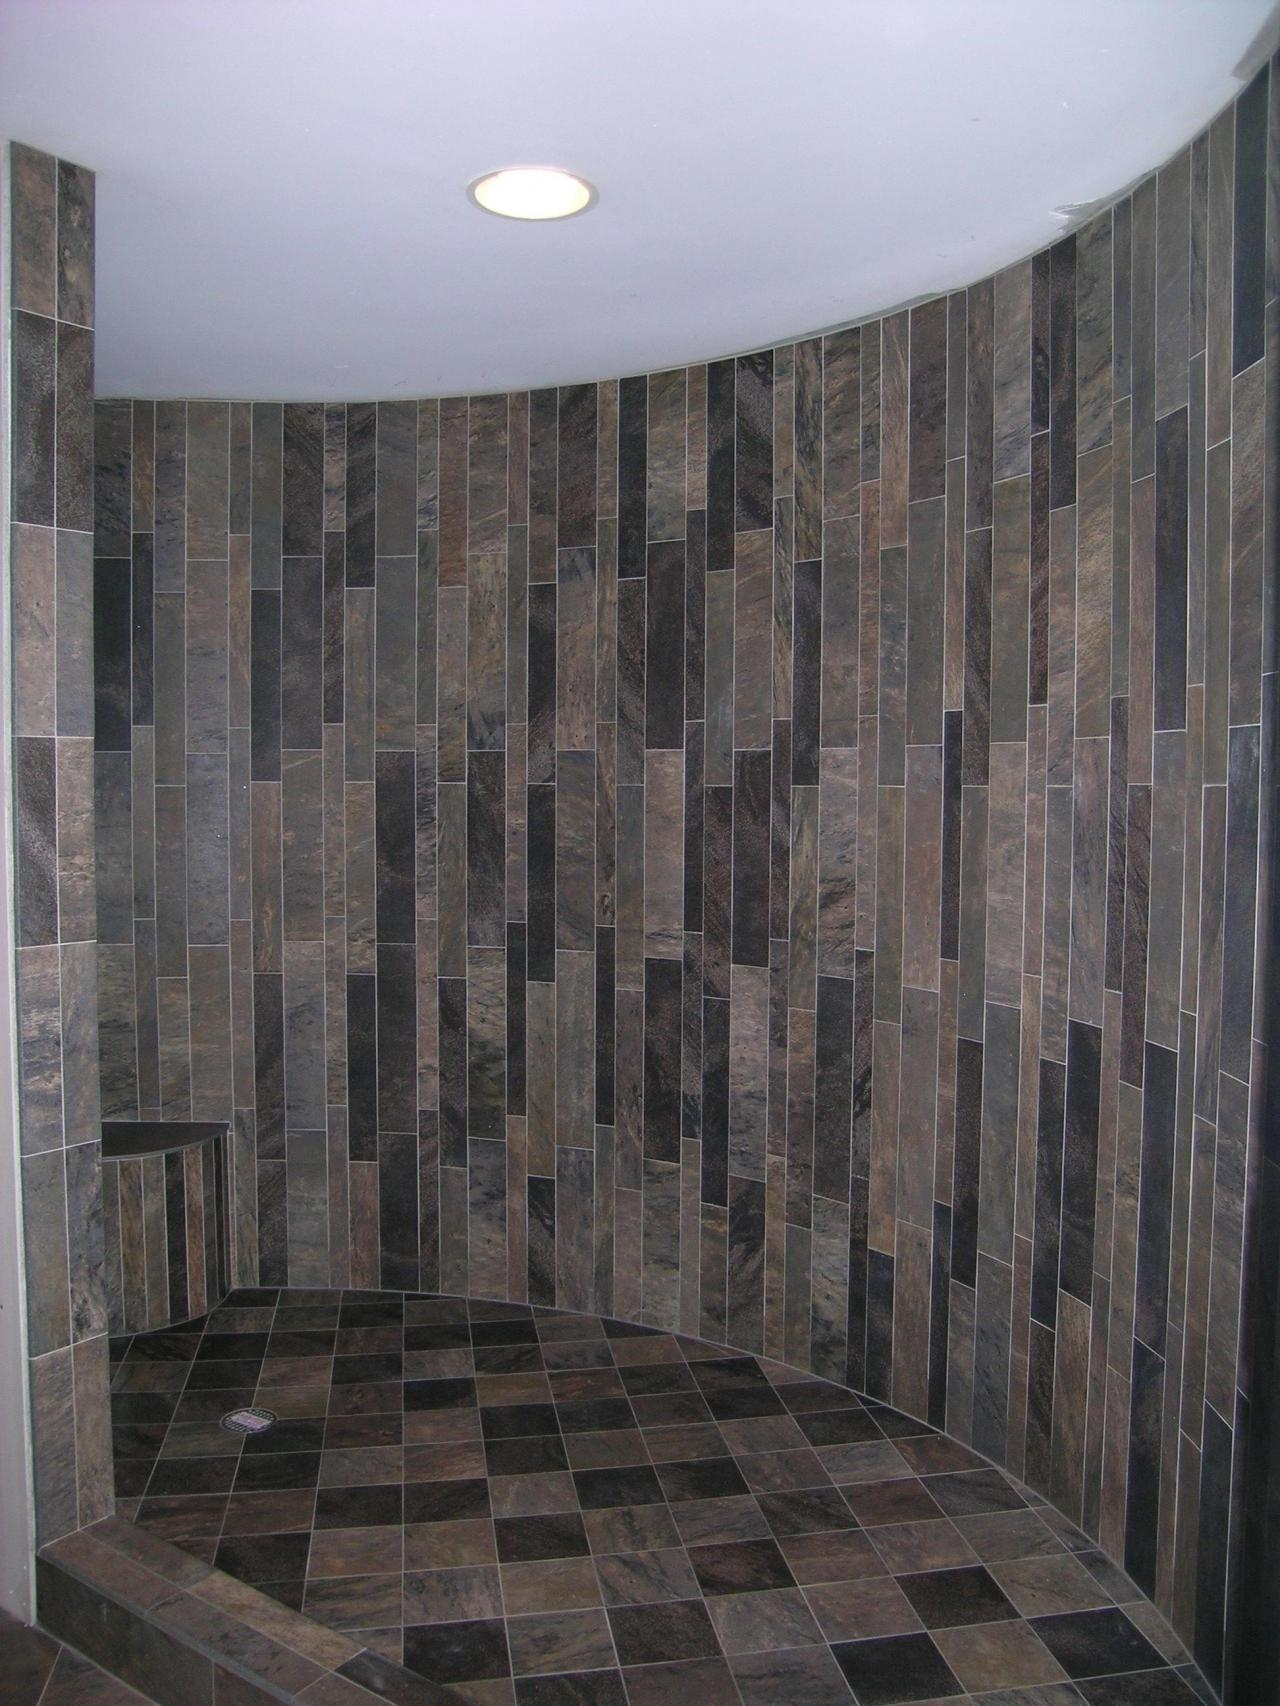 Ceramic Or Porcelain Tiles For Shower Walls Ceramic Or Porcelain Tile For Shower Dezinde